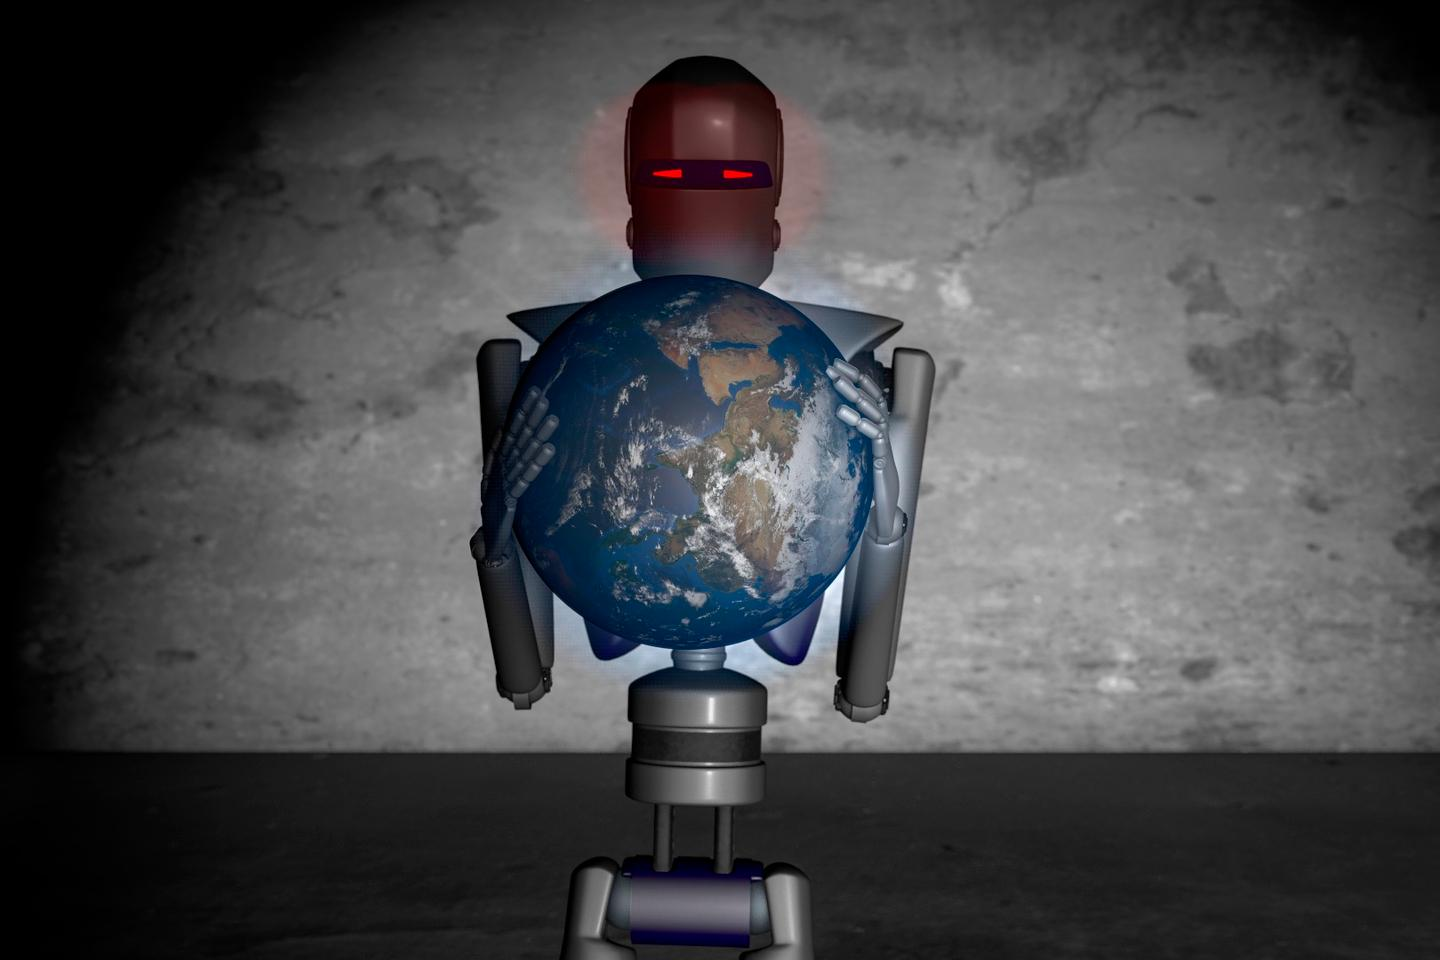 As robots develop cognitive abilities, the question of legal responsibility becomes an urgent one to address